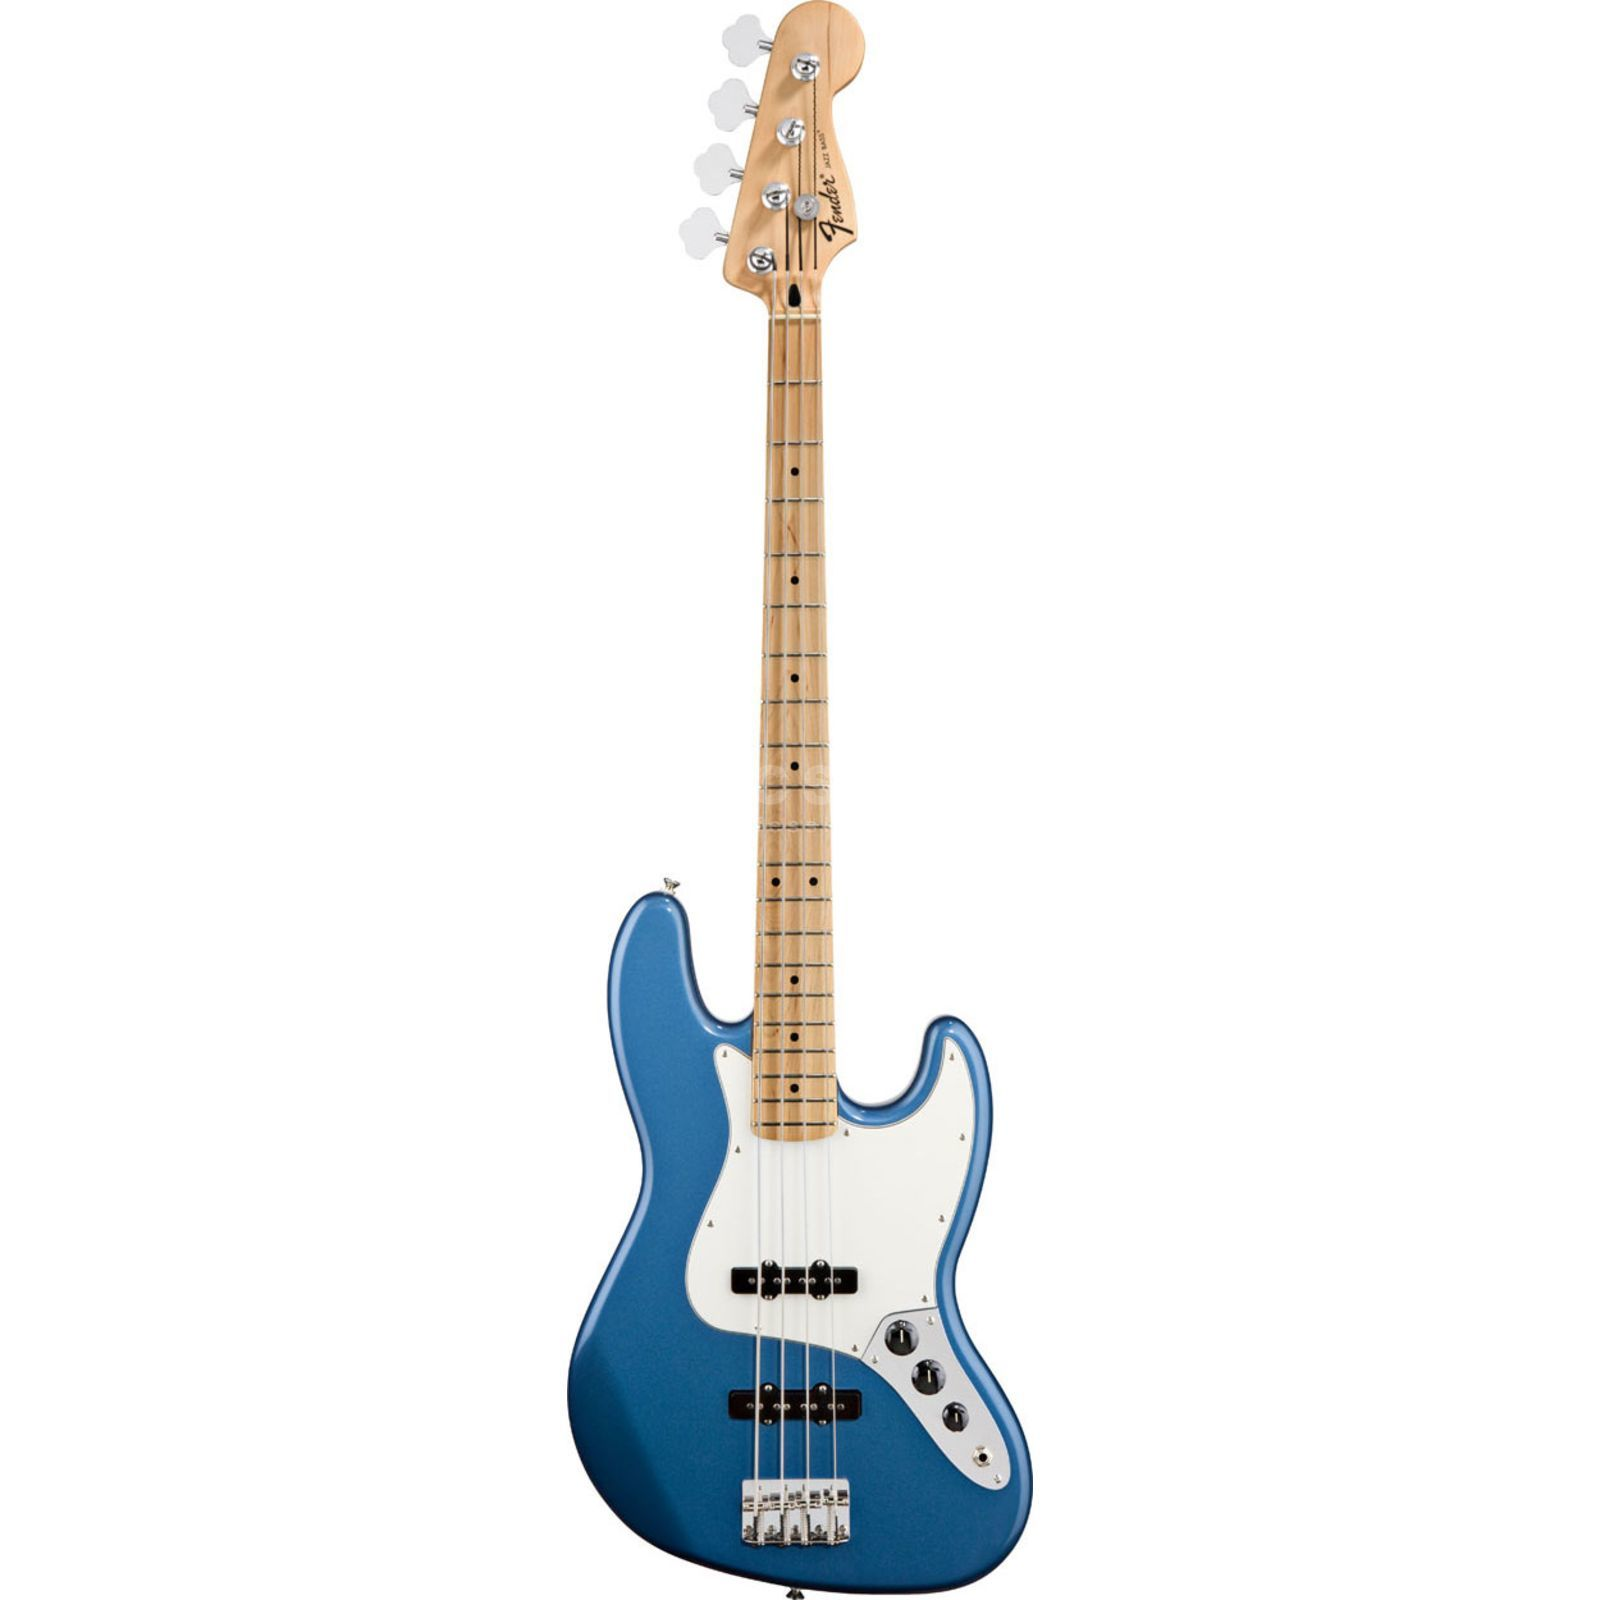 Fender Standard Jazz Bass MN Lake Placid Blue Изображение товара